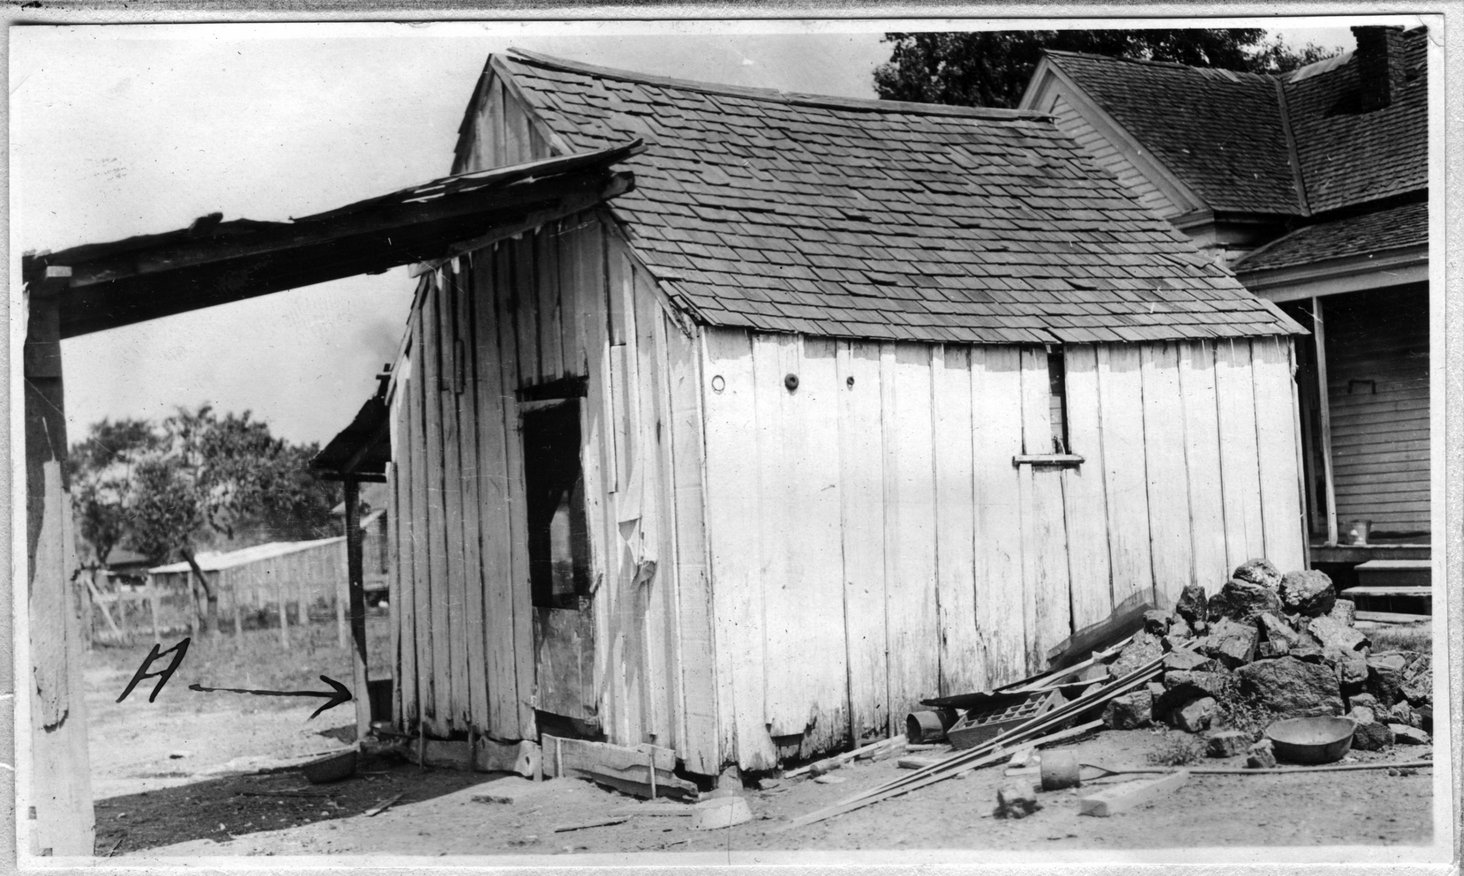 009~O. W. Meador Milk House Aug 1920.jpg